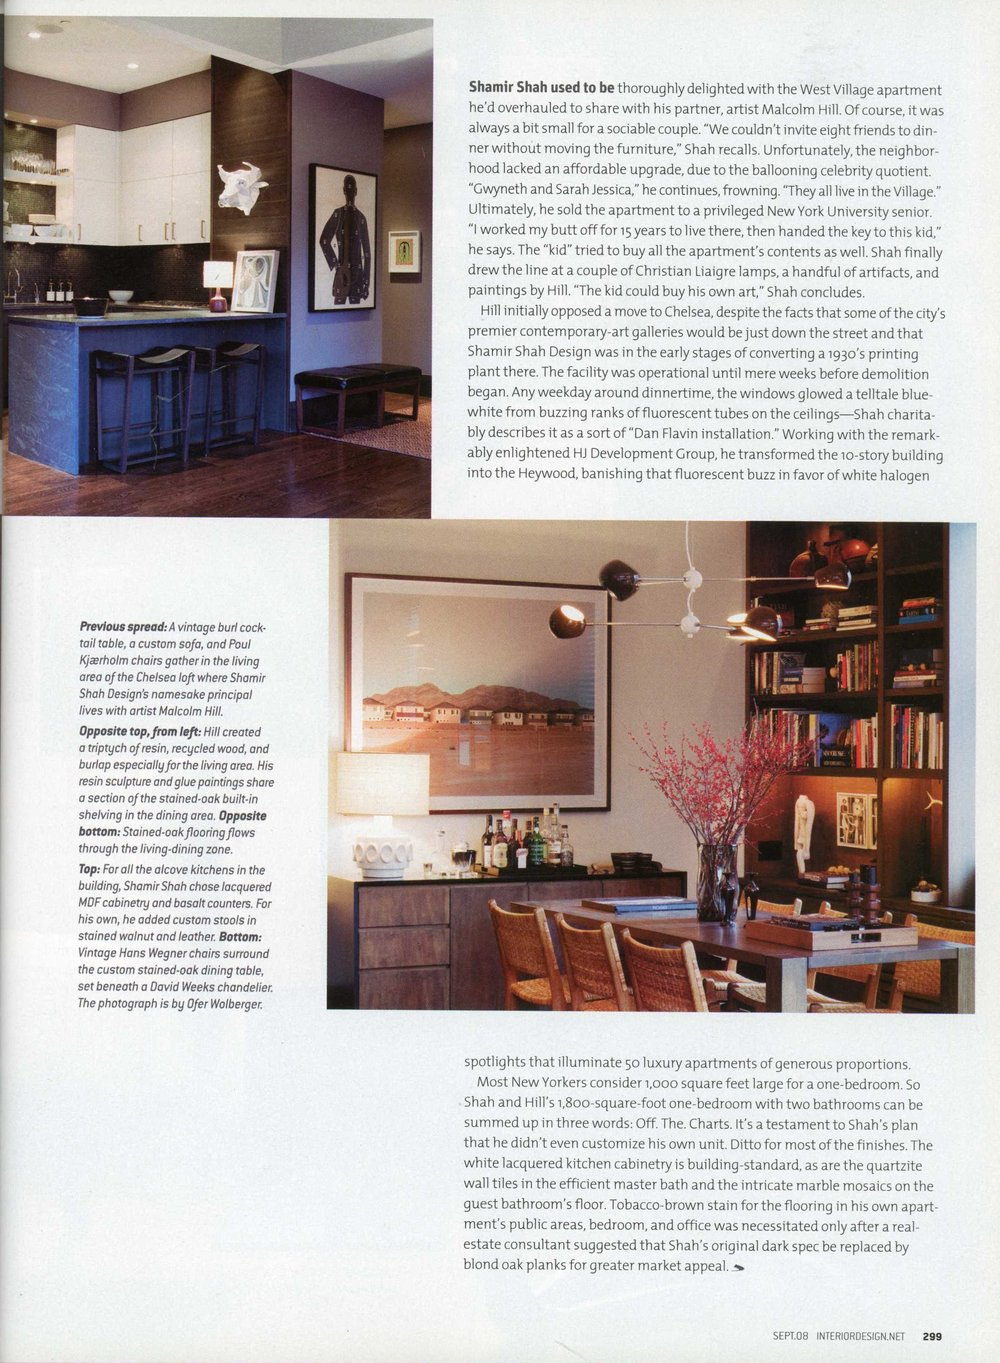 Interior Design_Sept 08_SS Apt_Full Article_Page_5.jpg